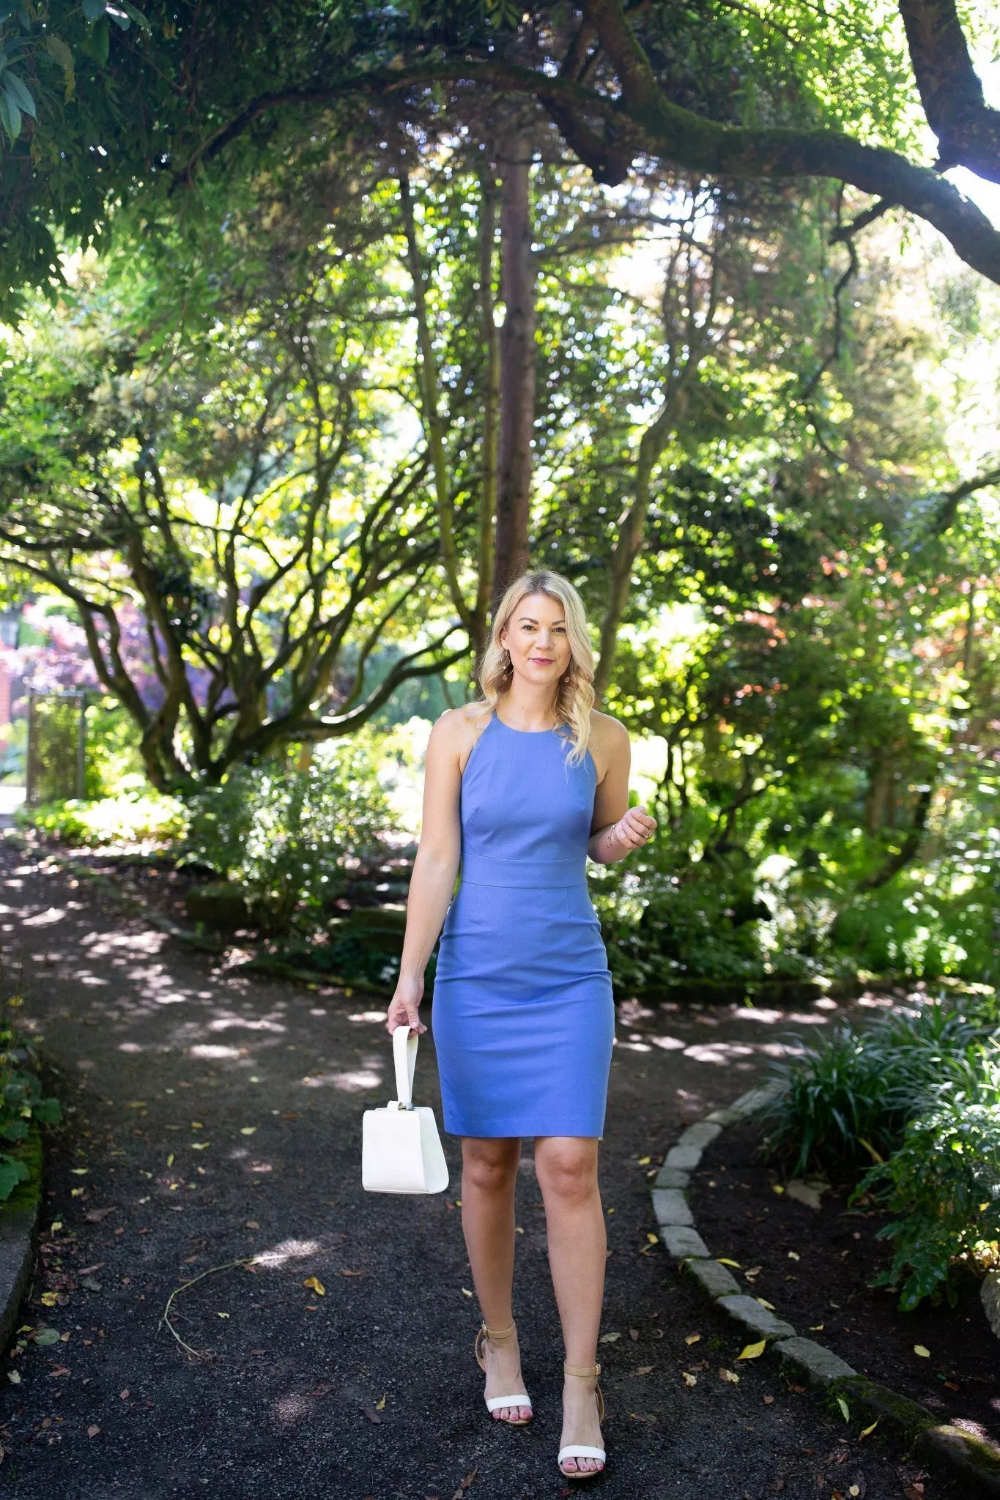 The Perfect Summer Sheath Dress With Images Dresses Periwinkle Dress Sheath Dress [ 1500 x 1000 Pixel ]